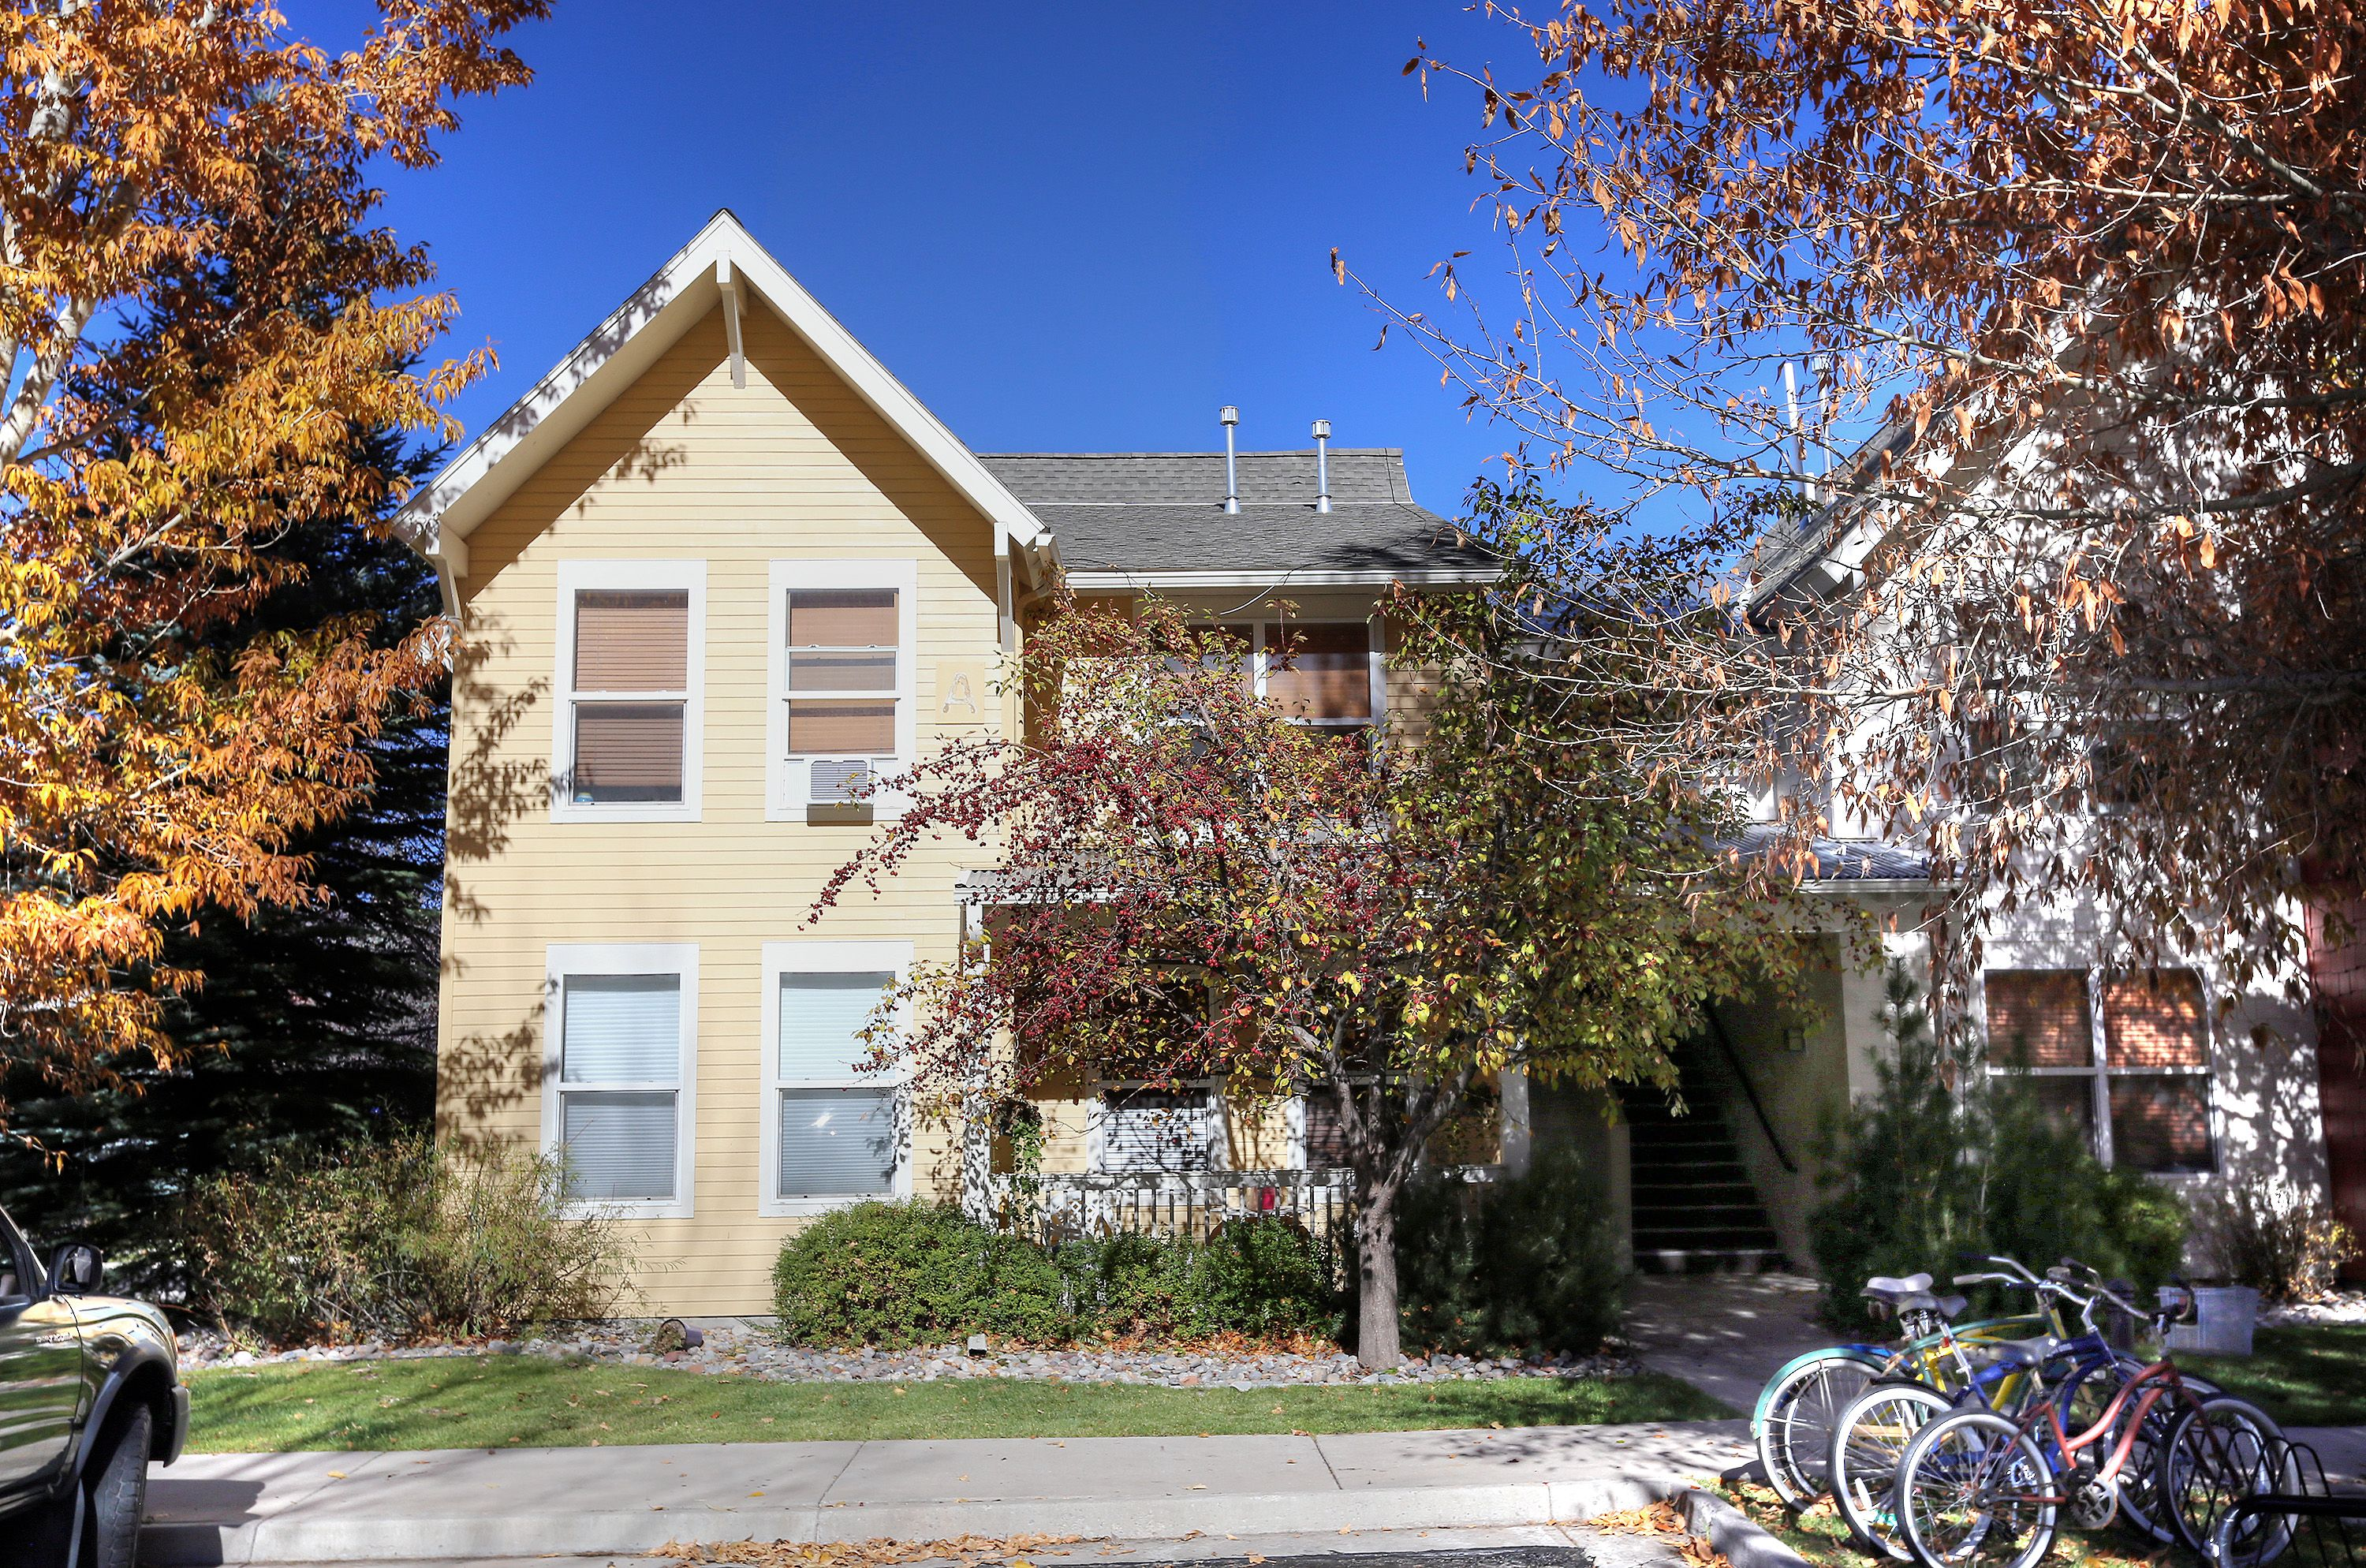 29 Pearch Street # A102 Eagle, CO 81631